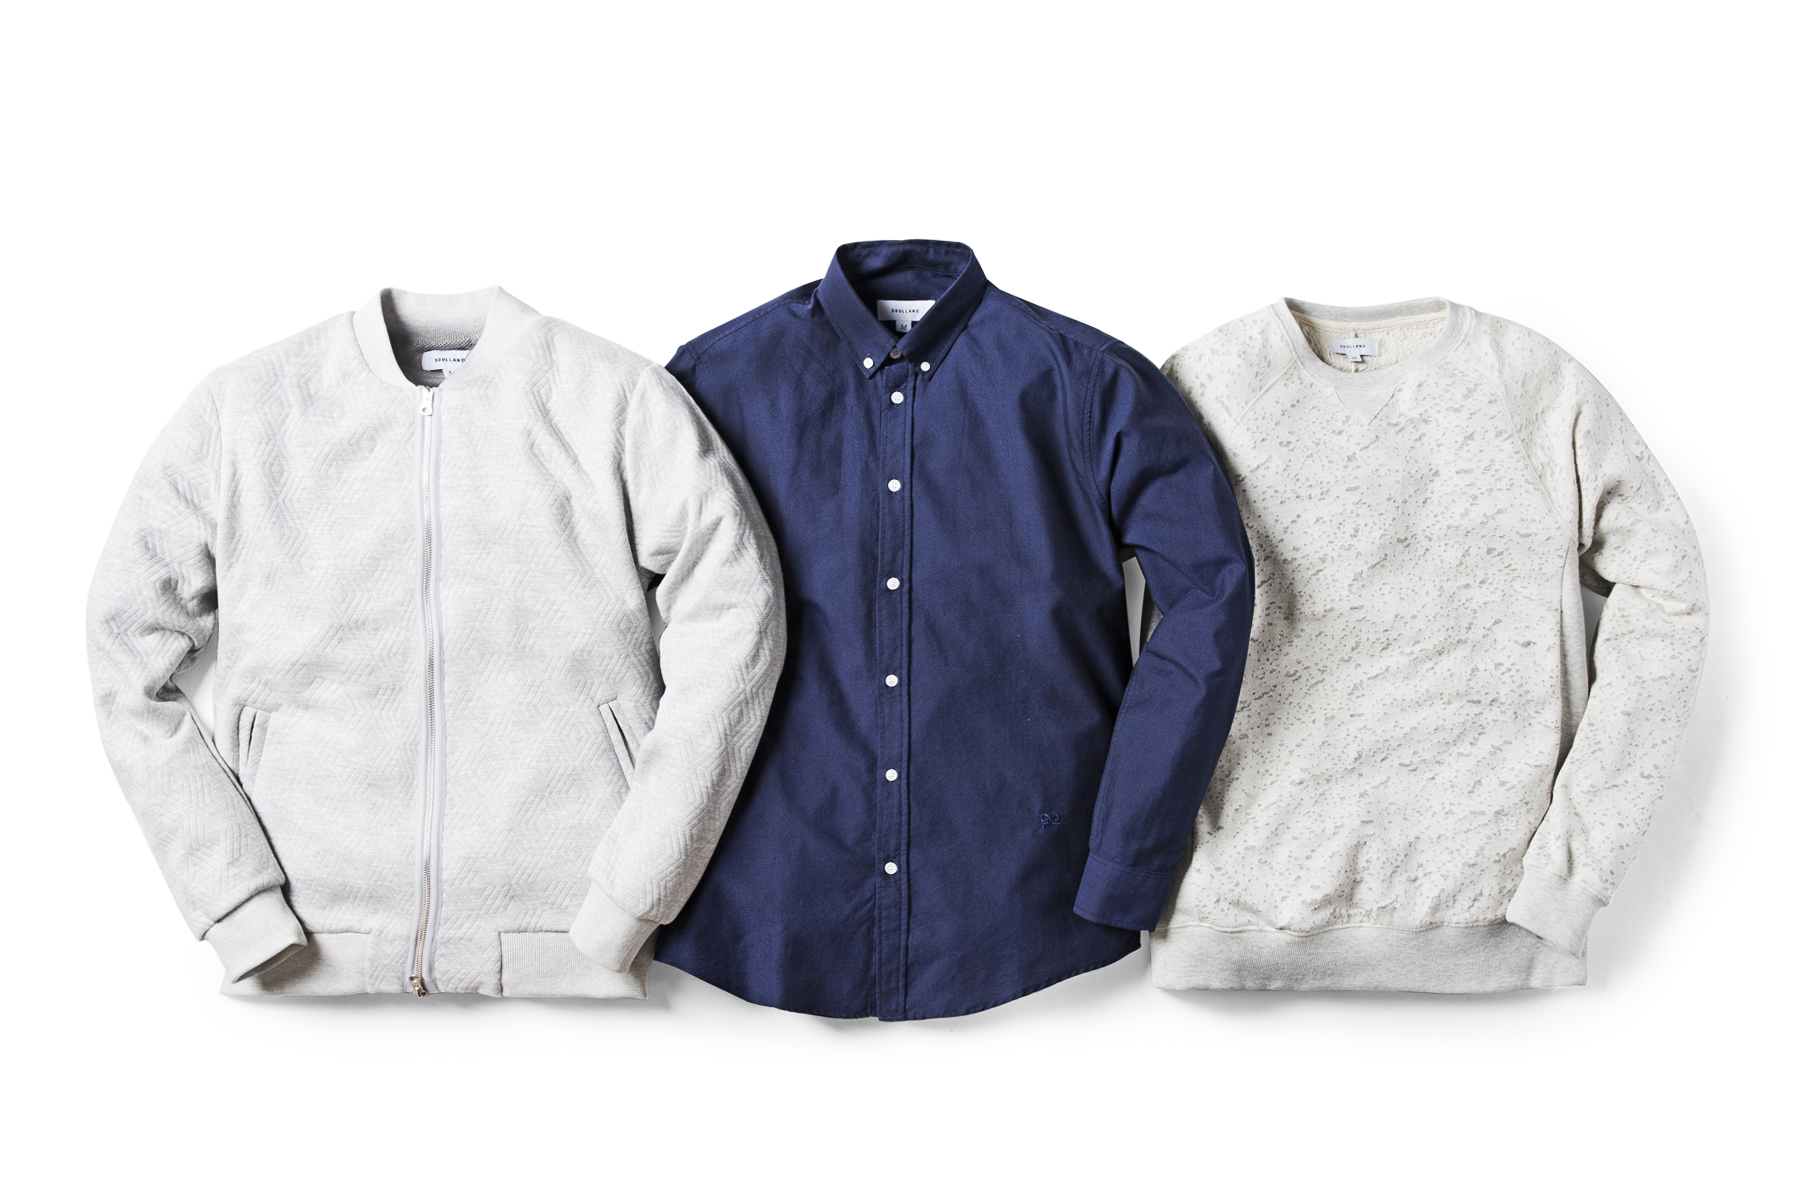 Soulland 2015 Spring/Summer Collection